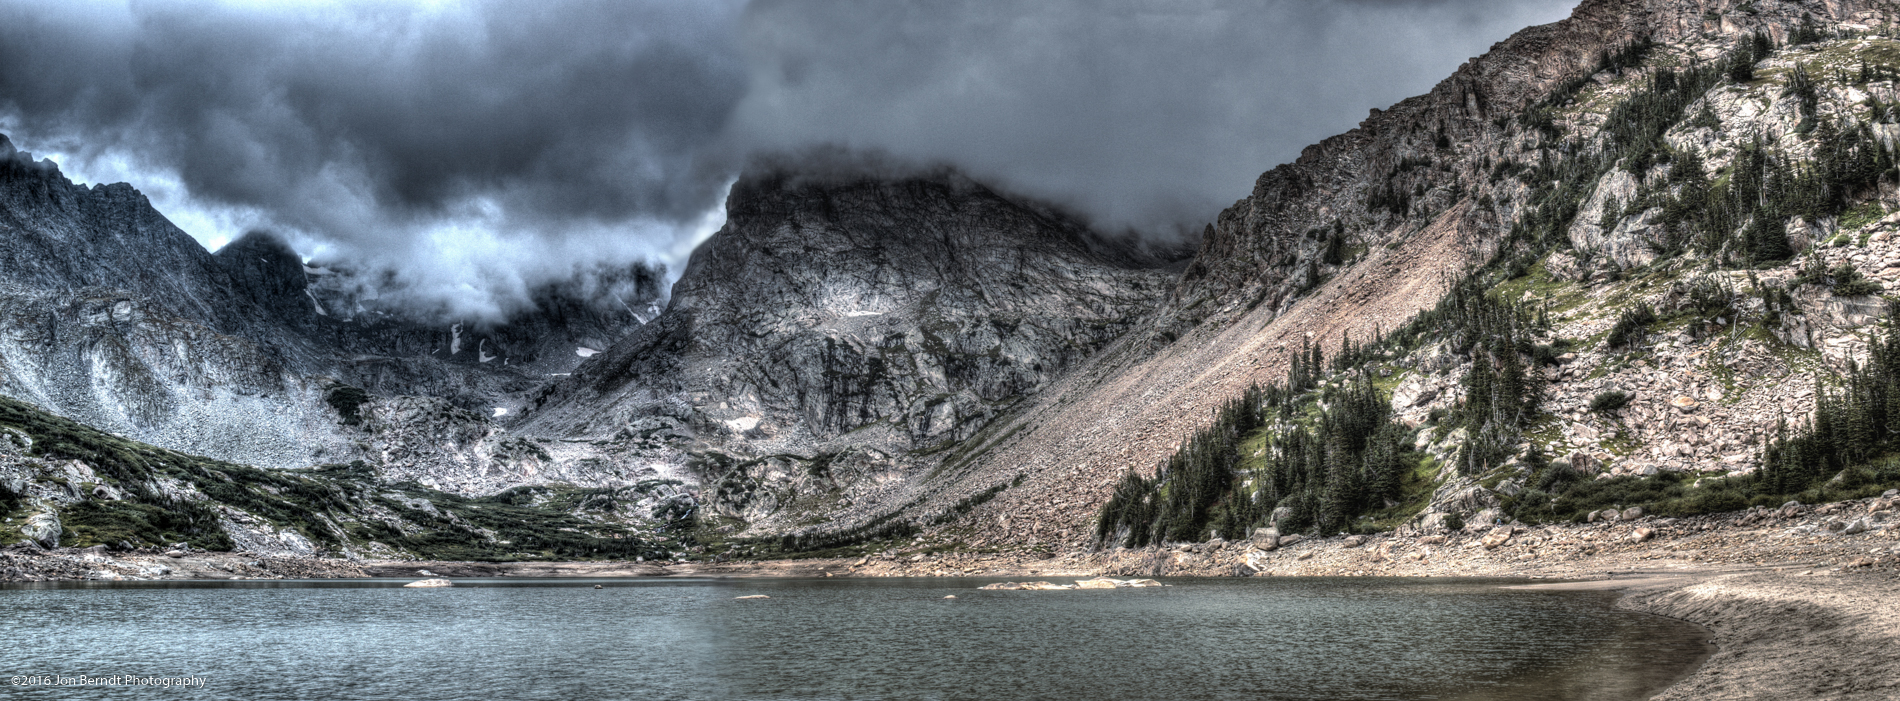 IMG_2351_2_3_tonemapped_creativePanWide-2.jpg